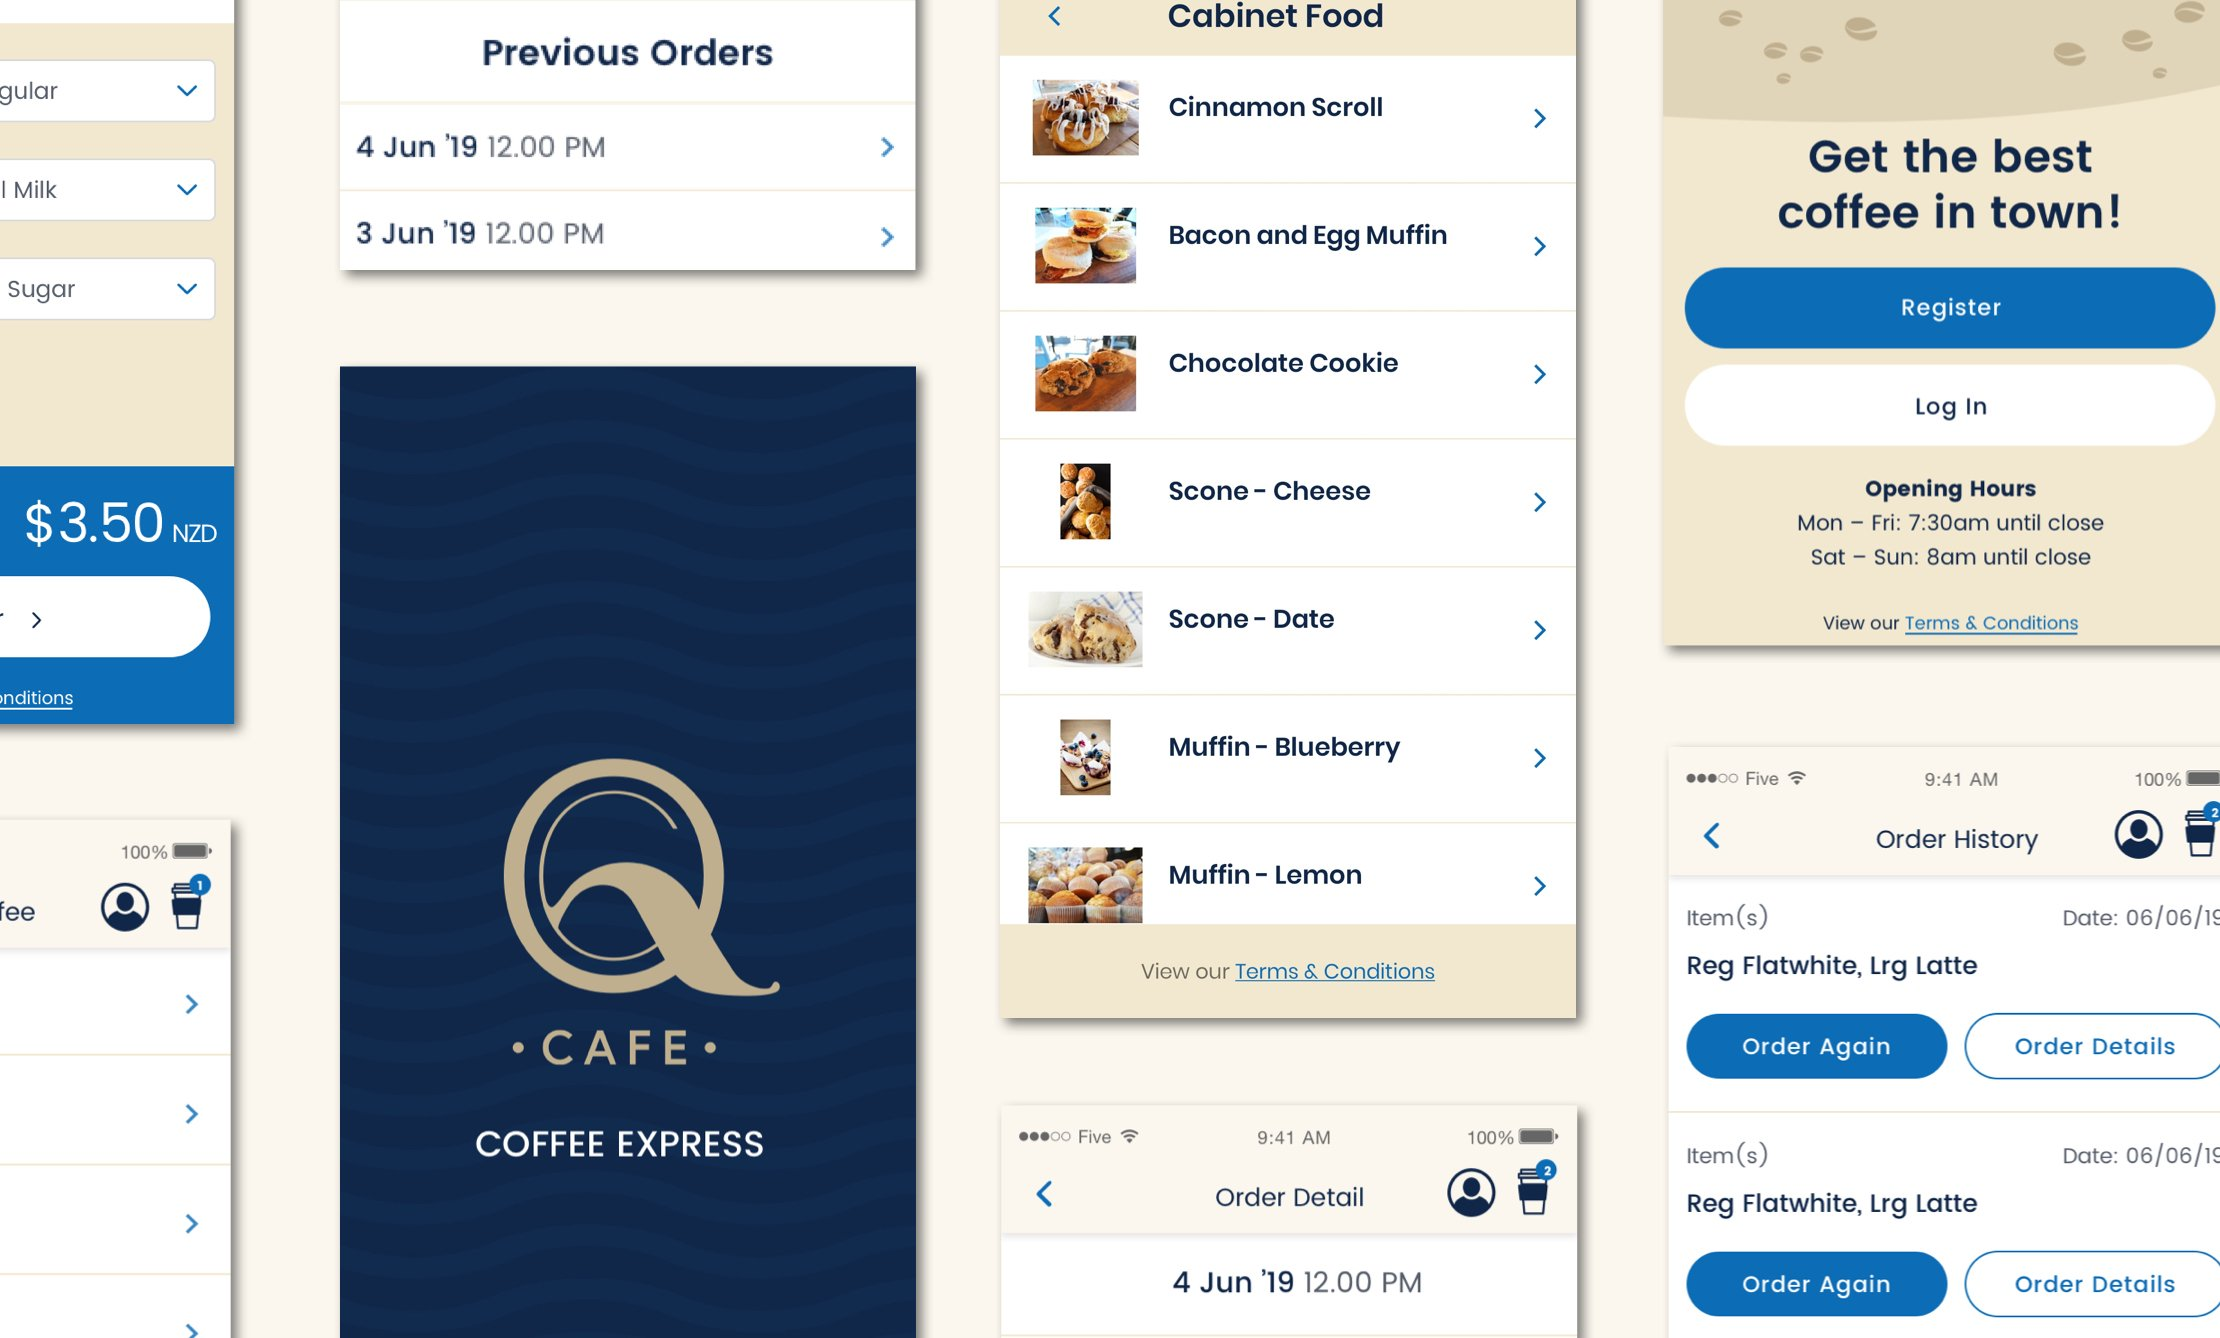 How our logo looks layout - QCafe App